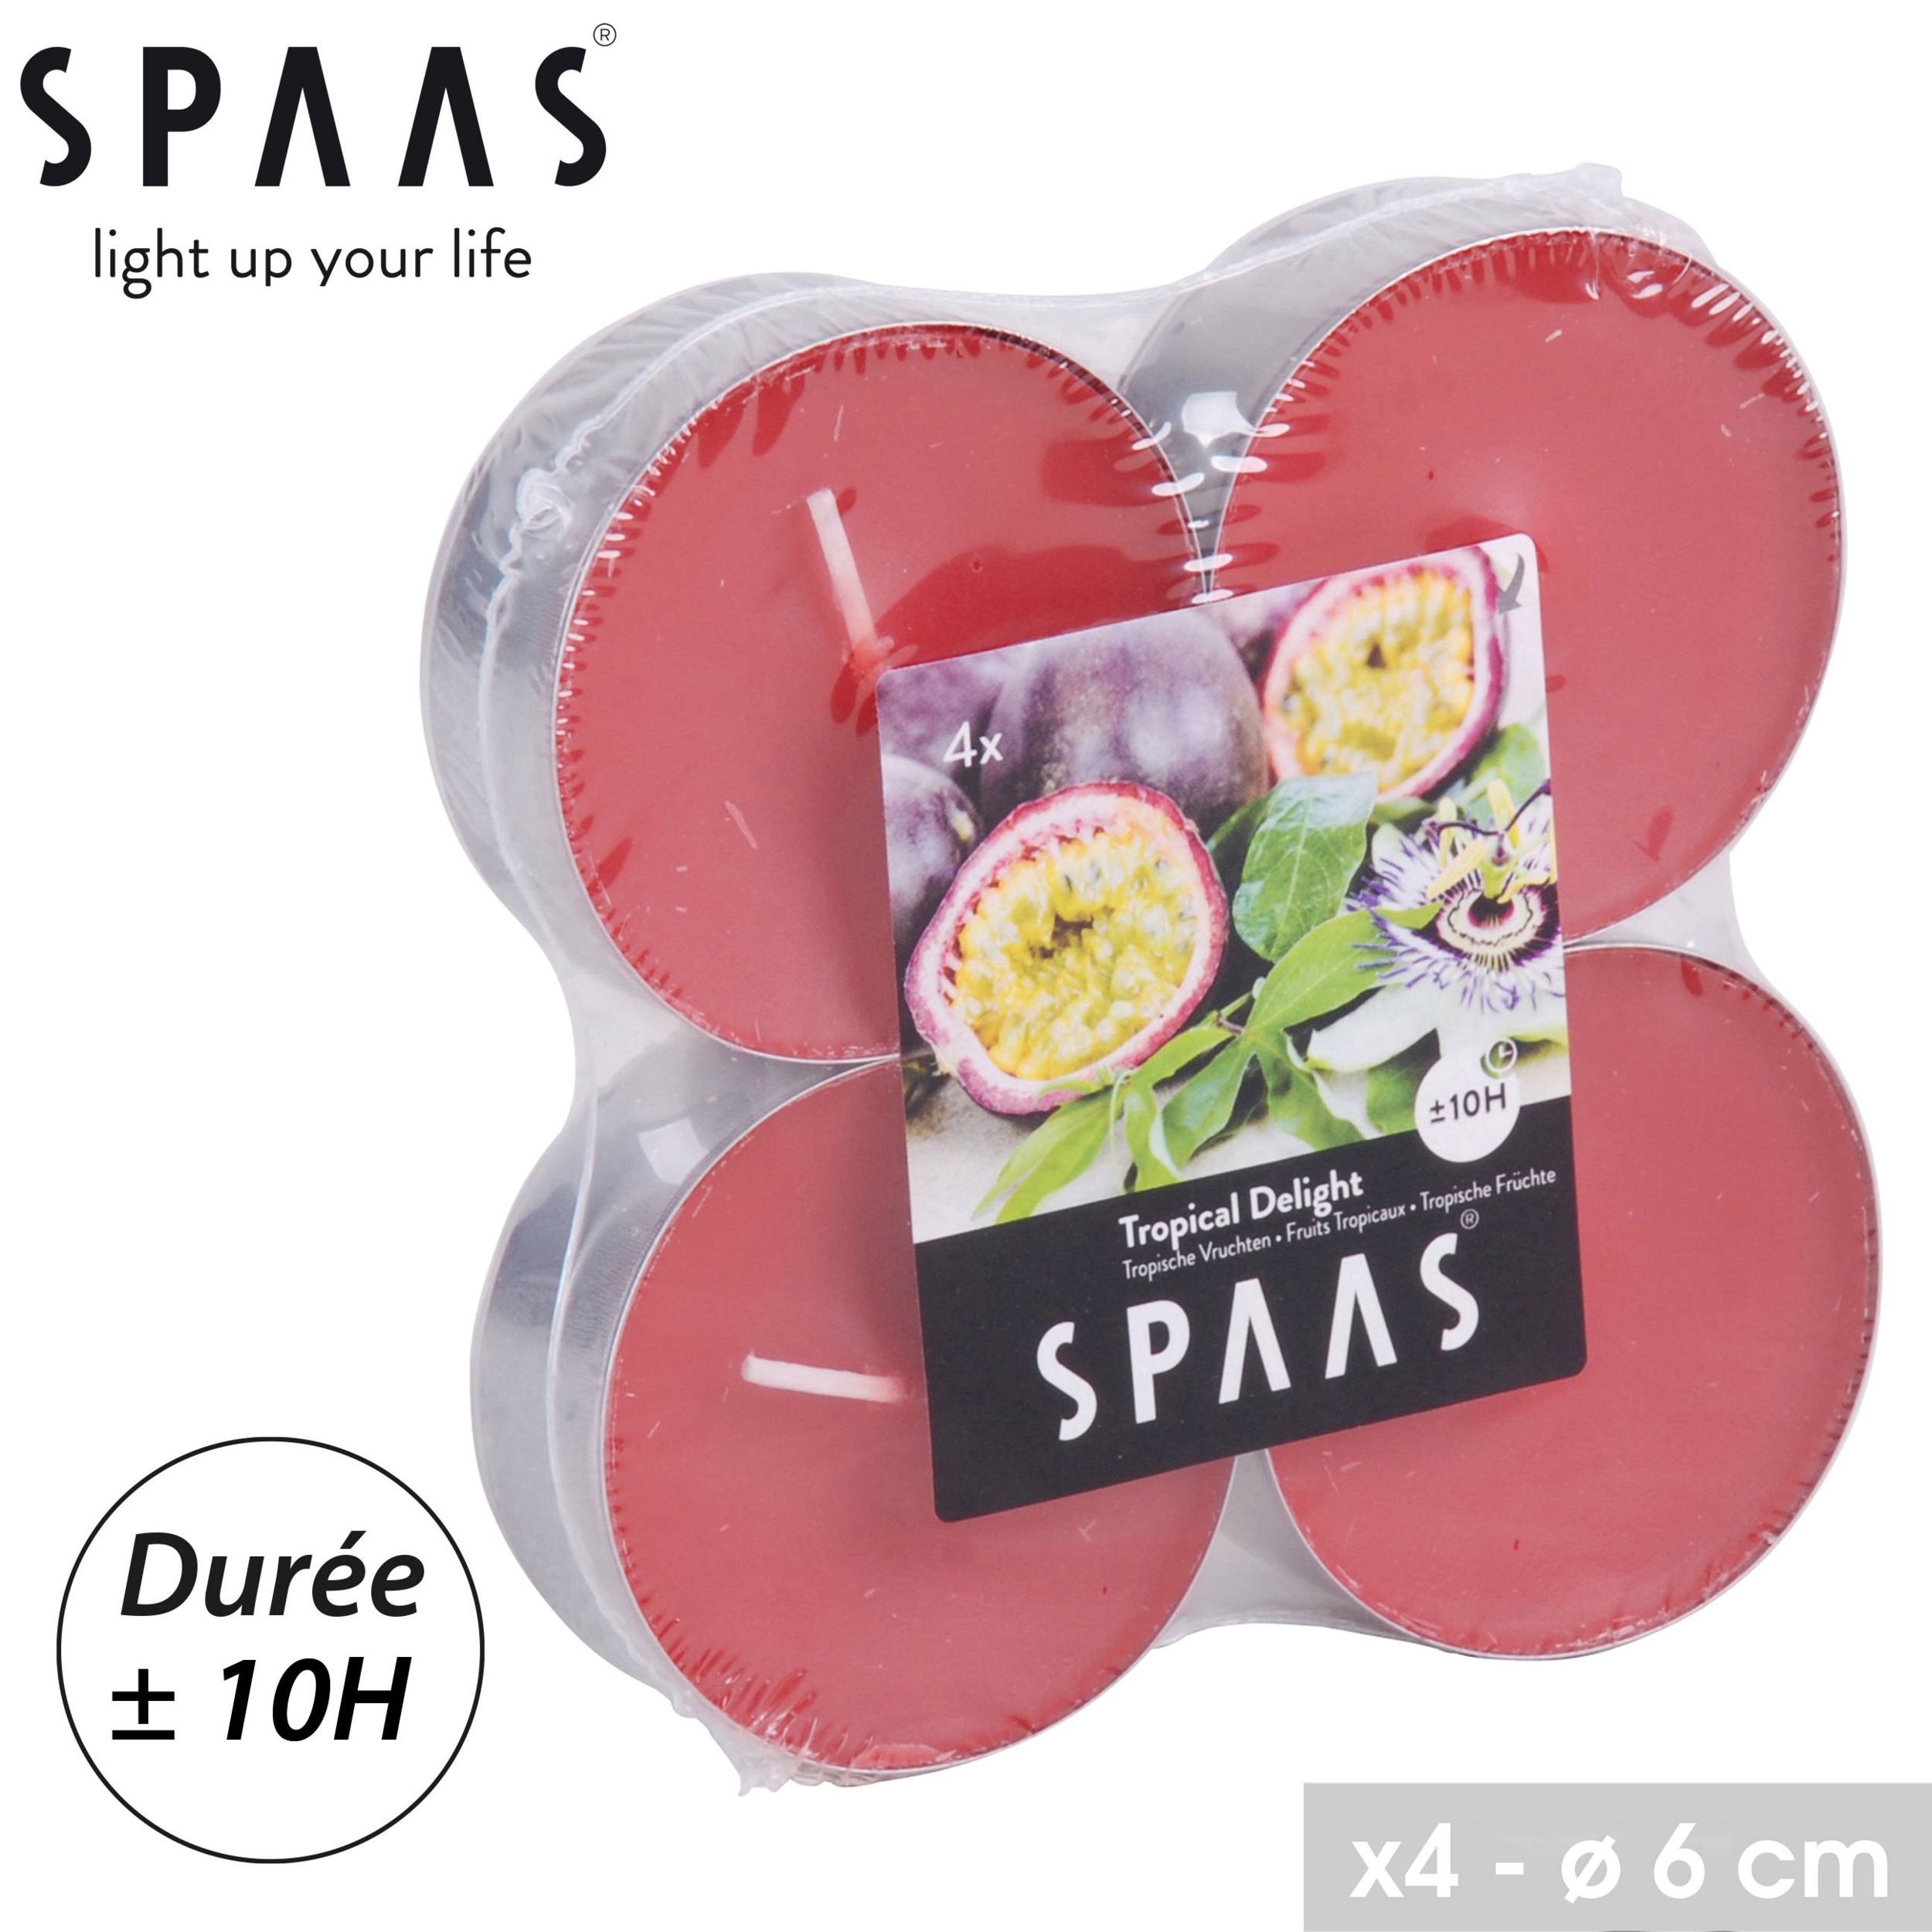 SPAAS_-_BOUGIE_CHAUFFE_PLAT_MAX_X4_PARFUM_DELICE_TROPICAL_38520